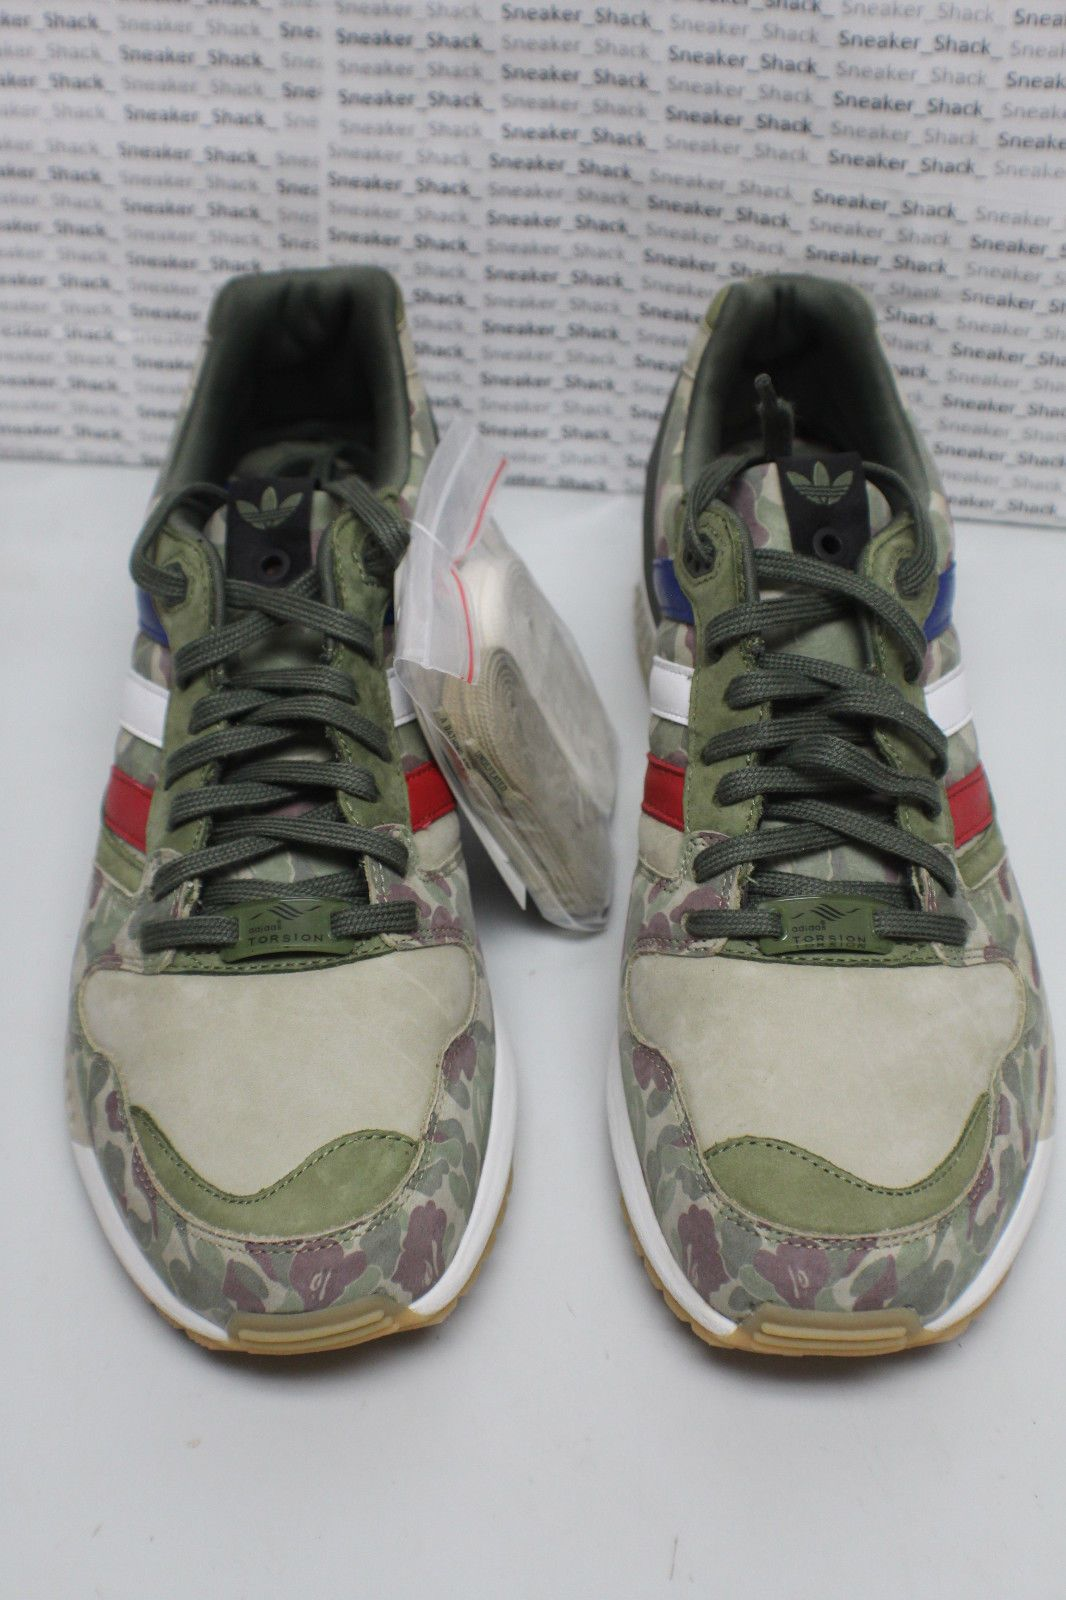 c8dadf472 ... order new ds adidas undefeated bape a bathing ape zx 5000 camo dd349  44ac6